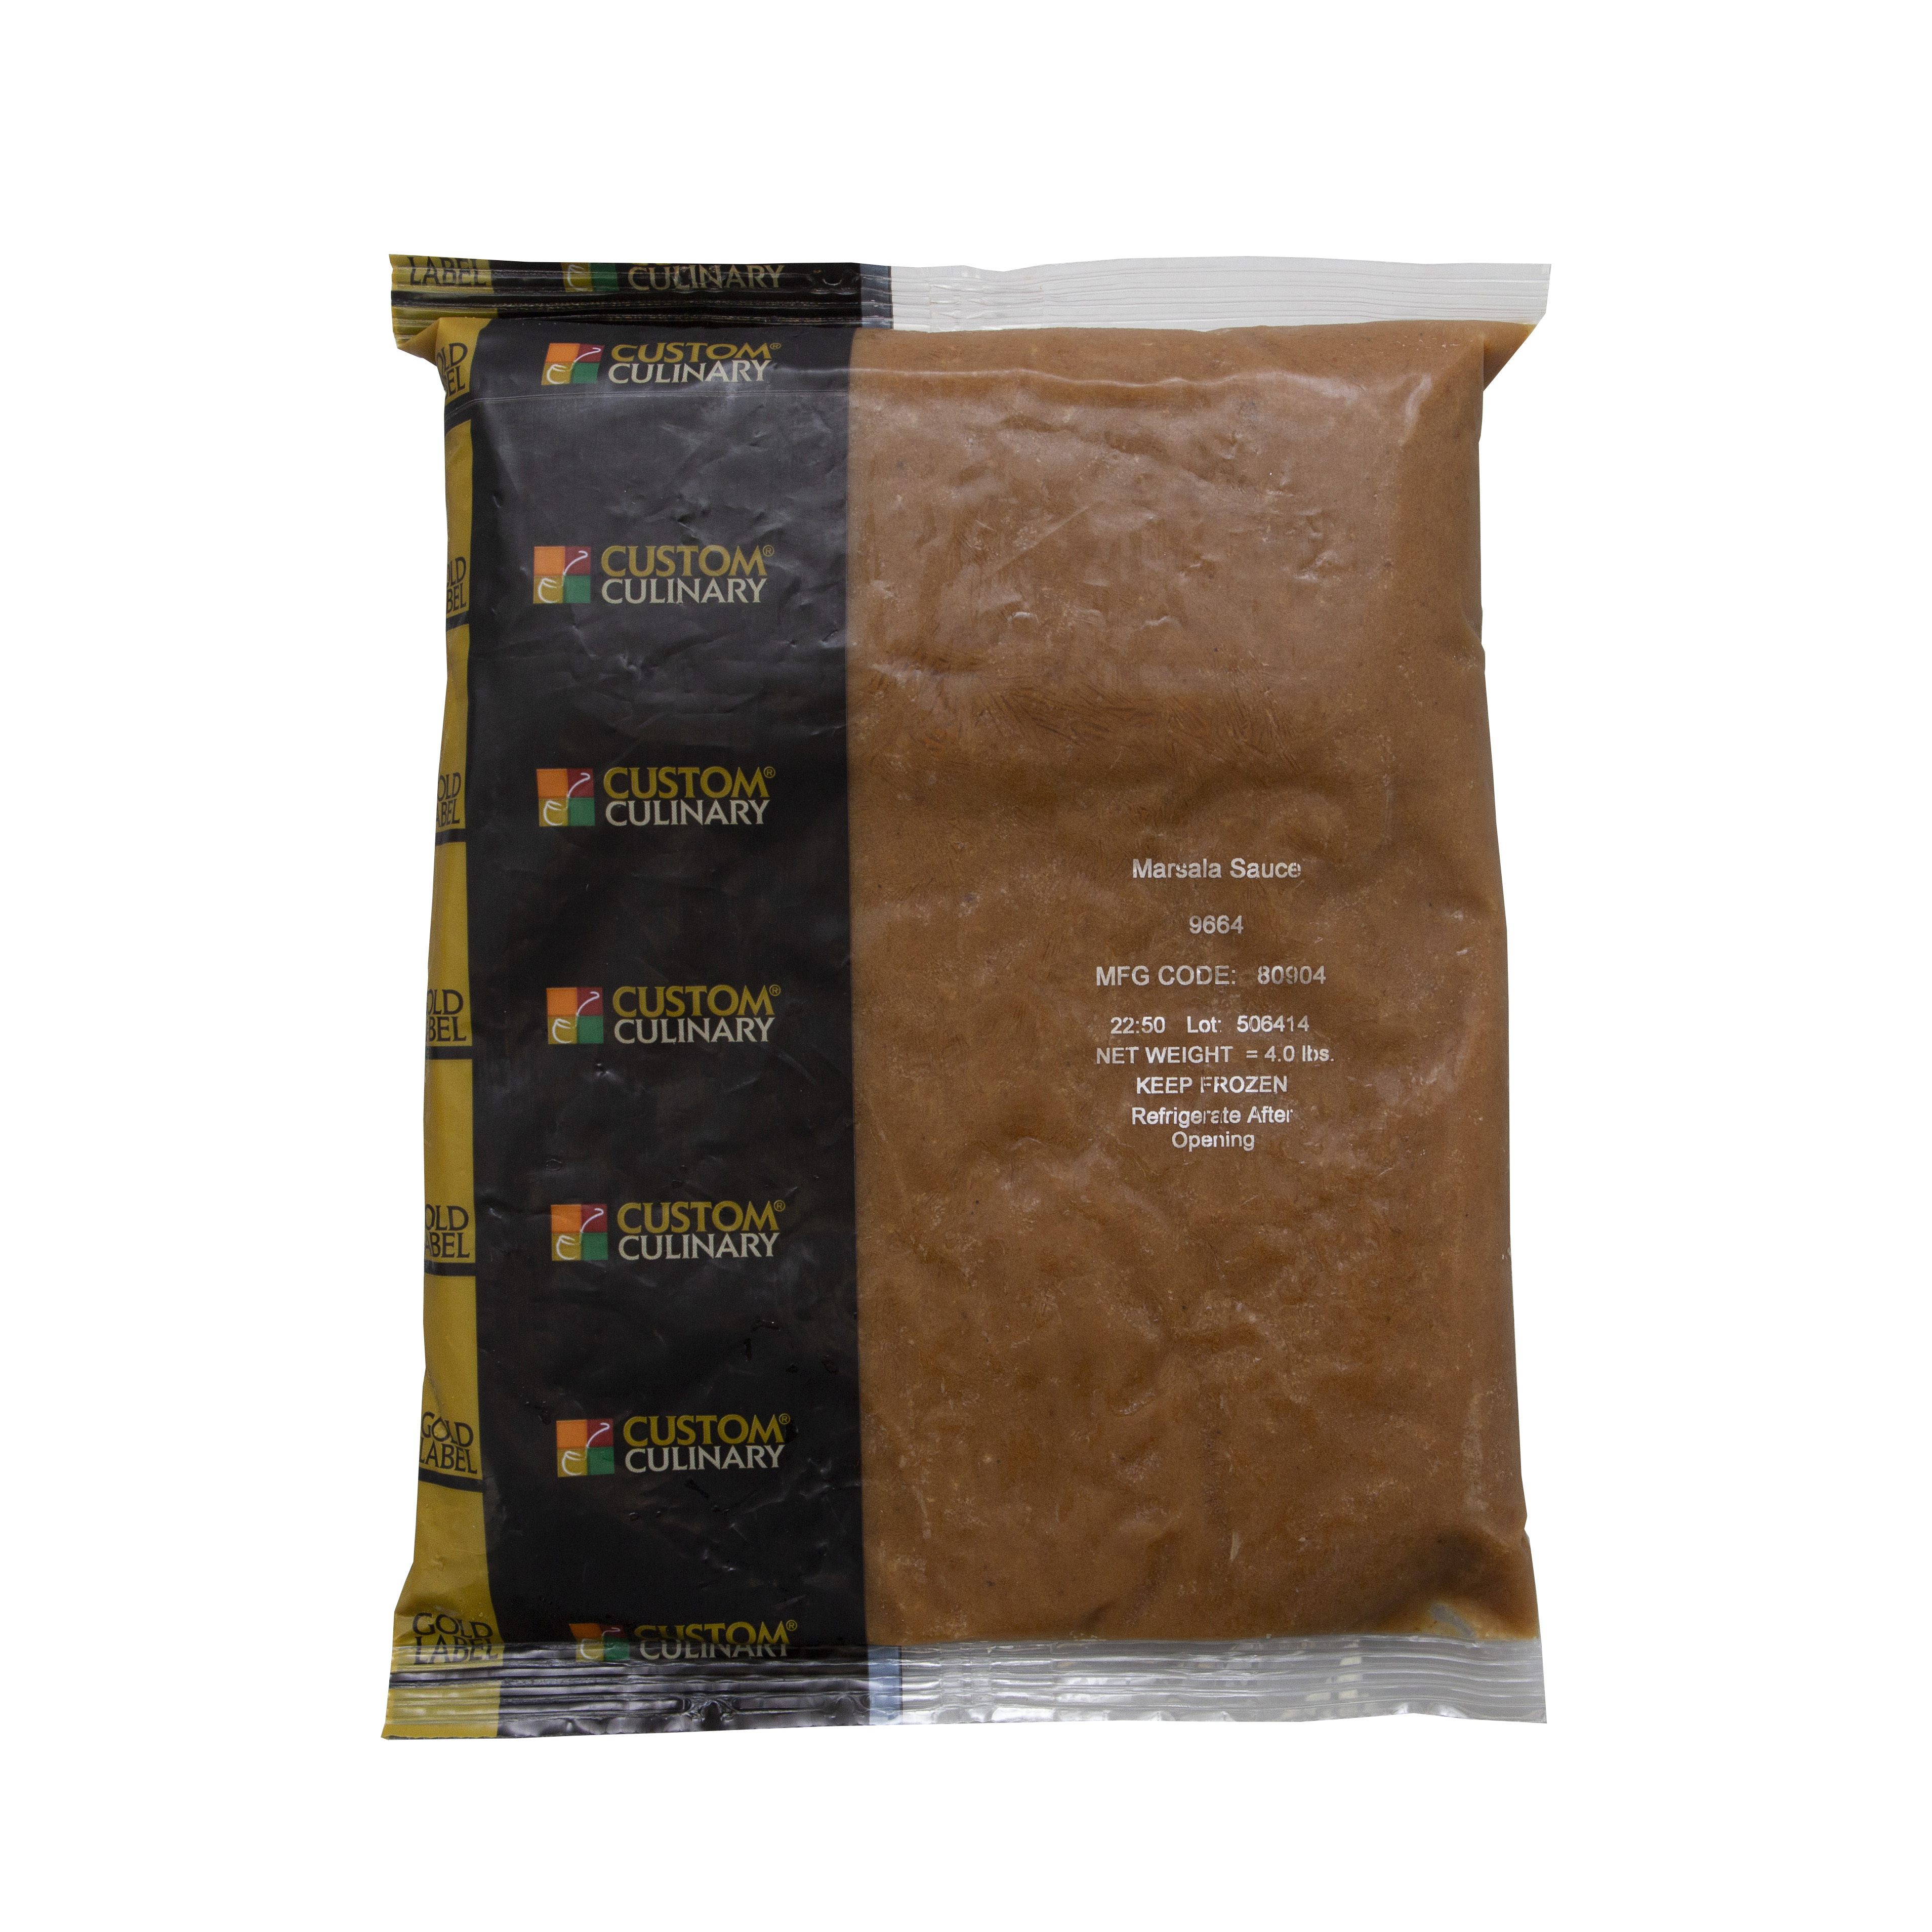 9664 - GOLD LABEL Ready-To-Use Frozen Marsala Sauce